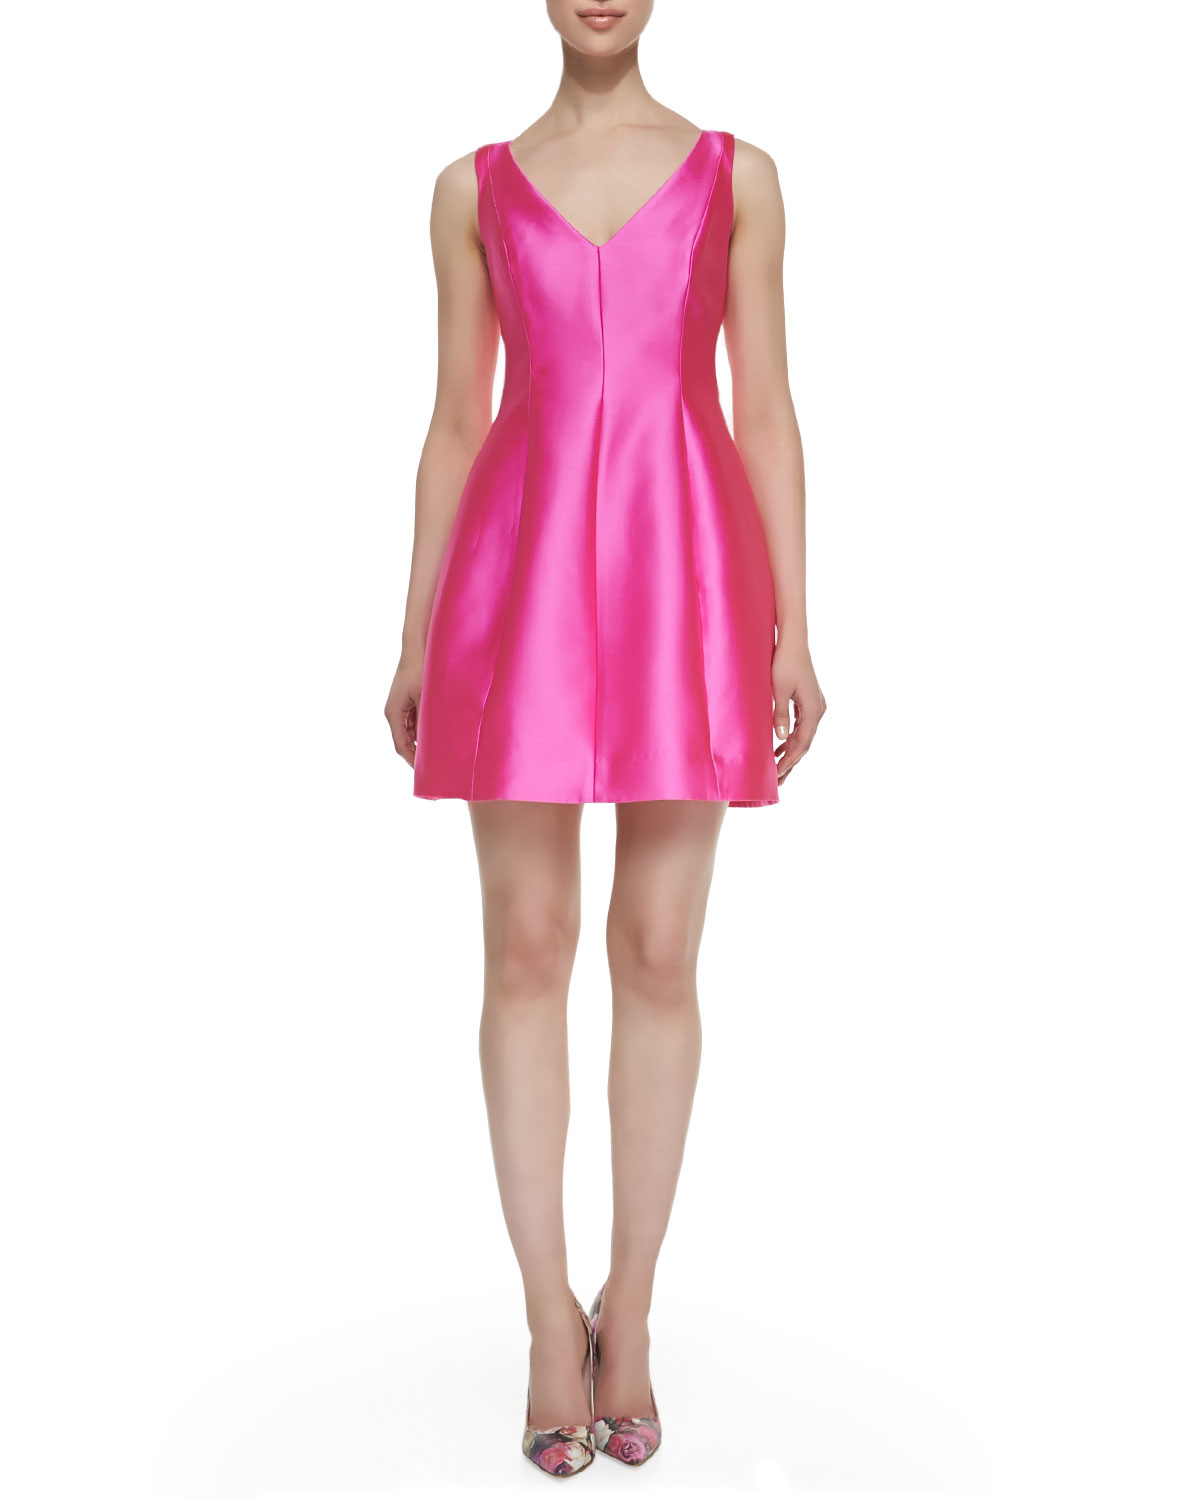 Womens sleeveless structured mini dress   kate spade new york   Rio pink (6)